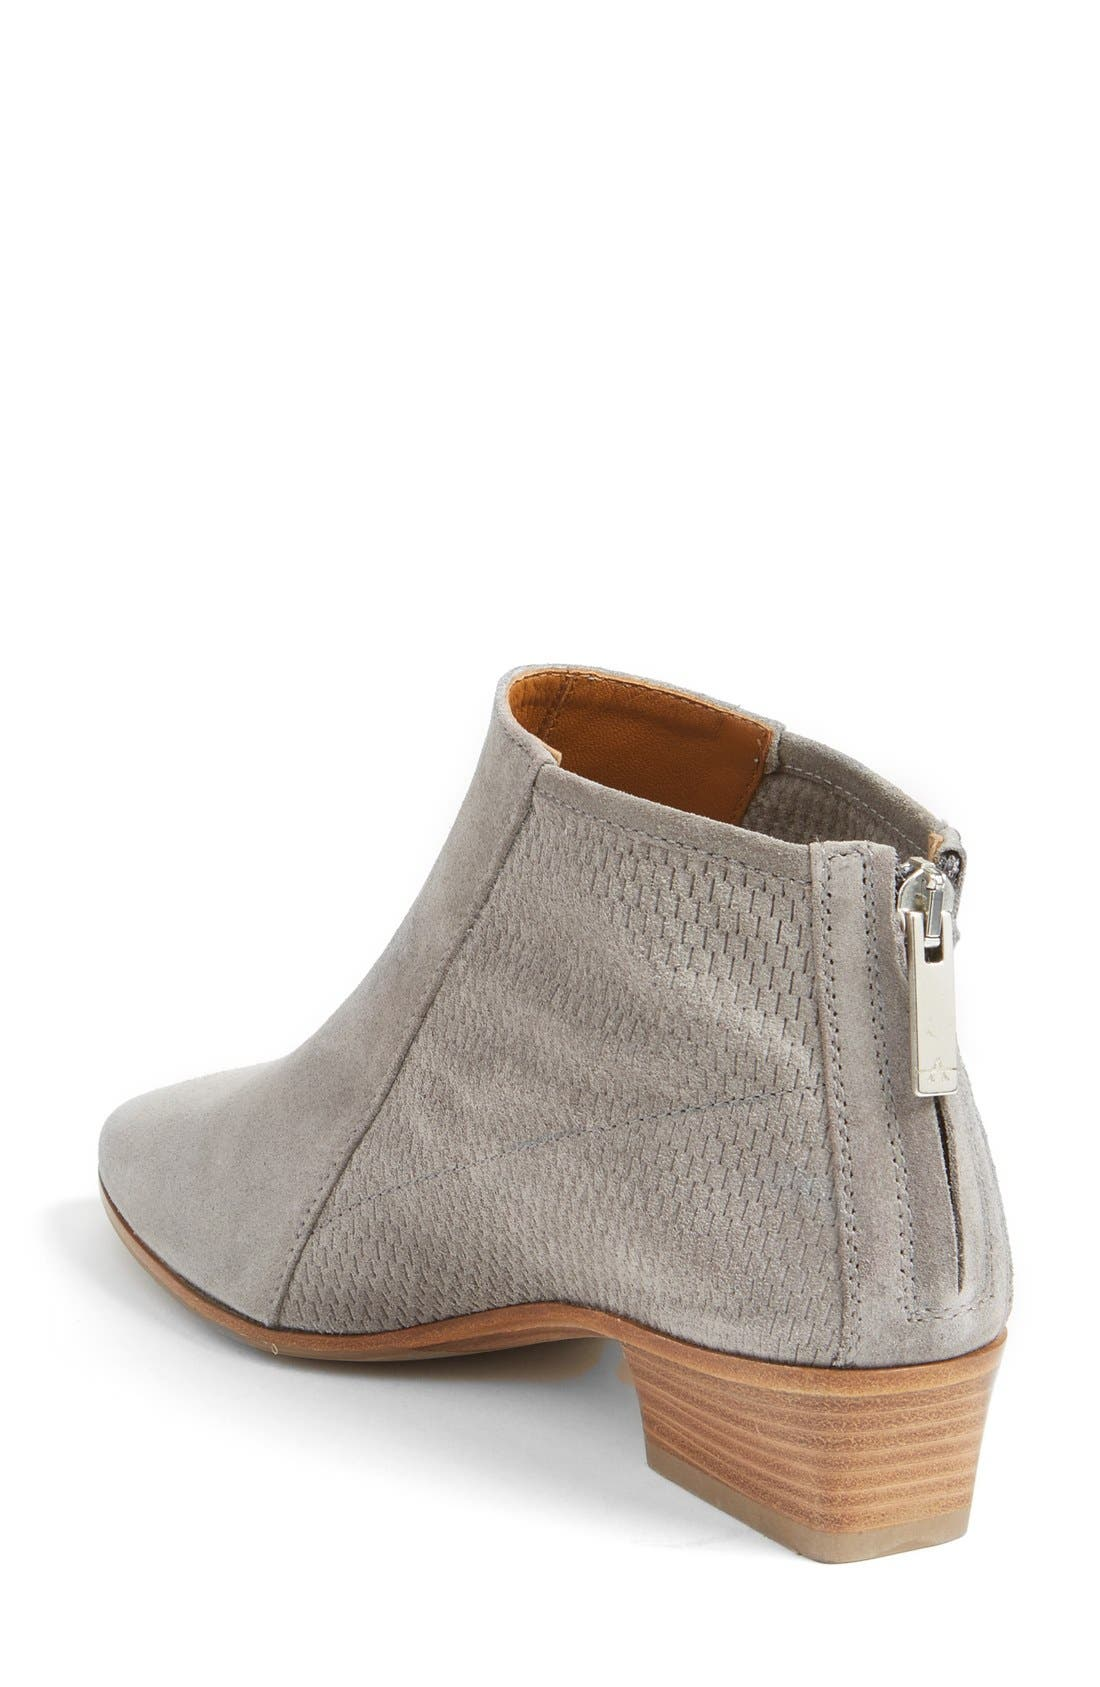 Fianna Perforated Bootie,                             Alternate thumbnail 7, color,